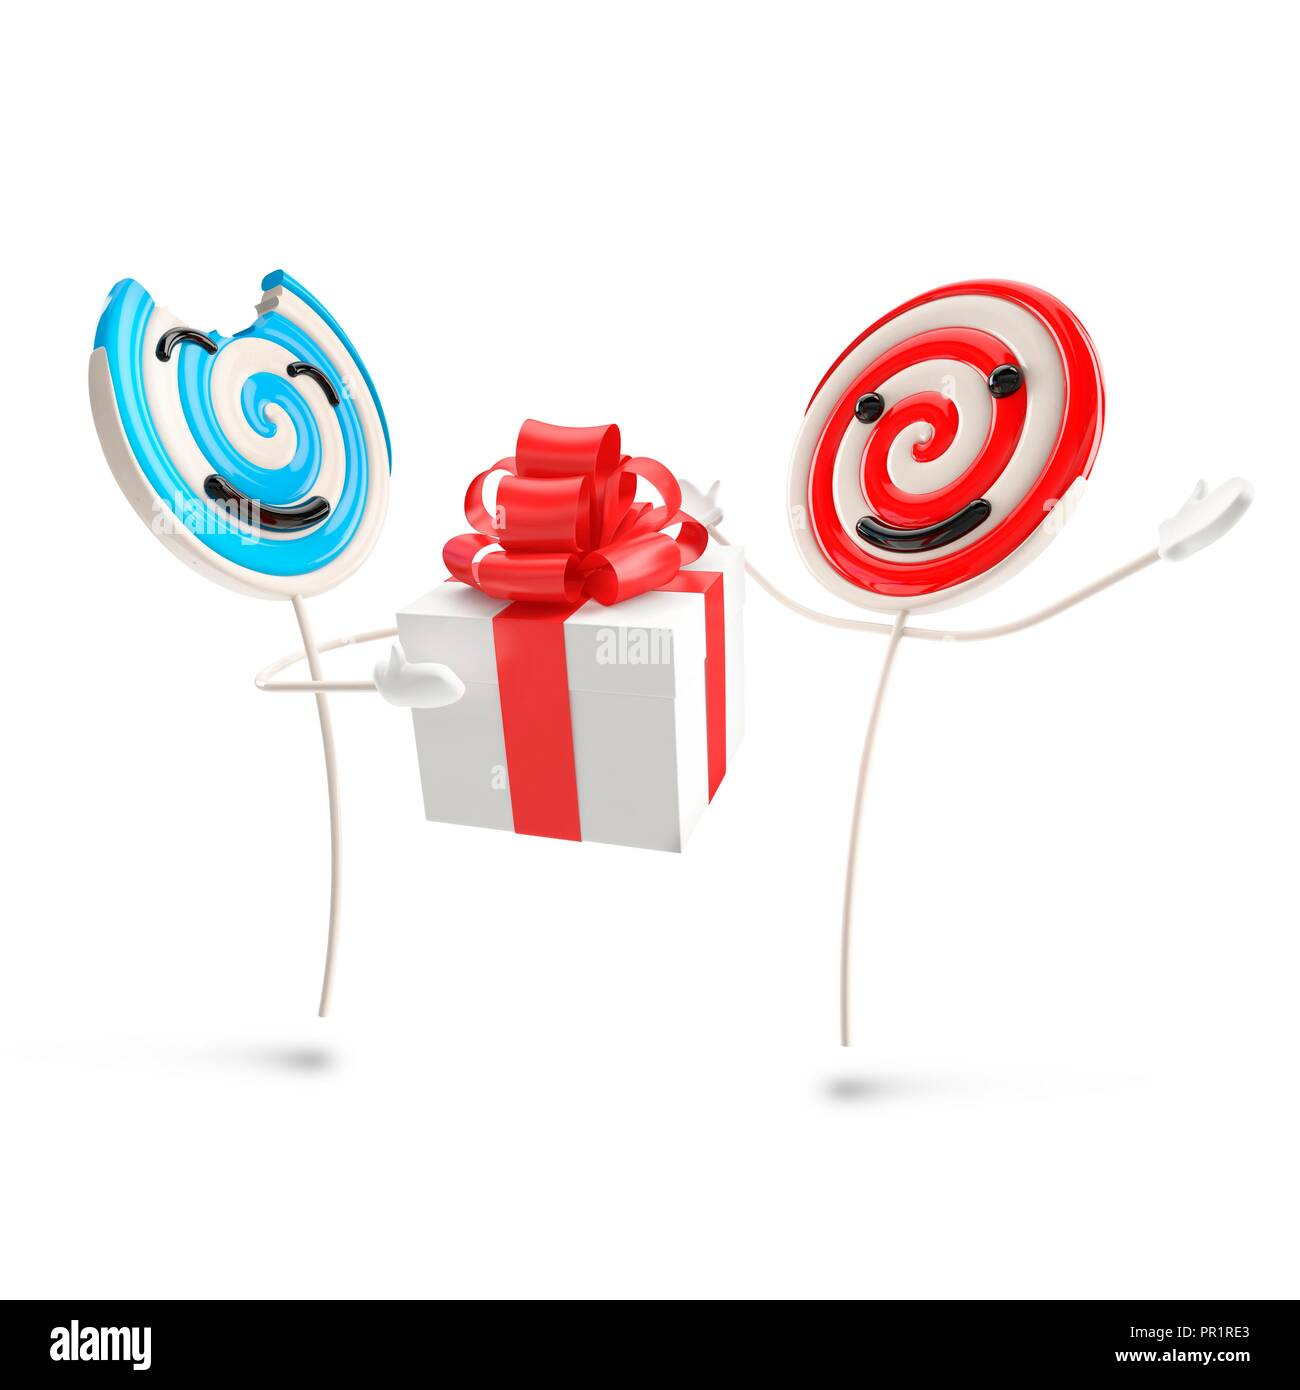 Lollipop person giving gift, illustration. Stock Photo